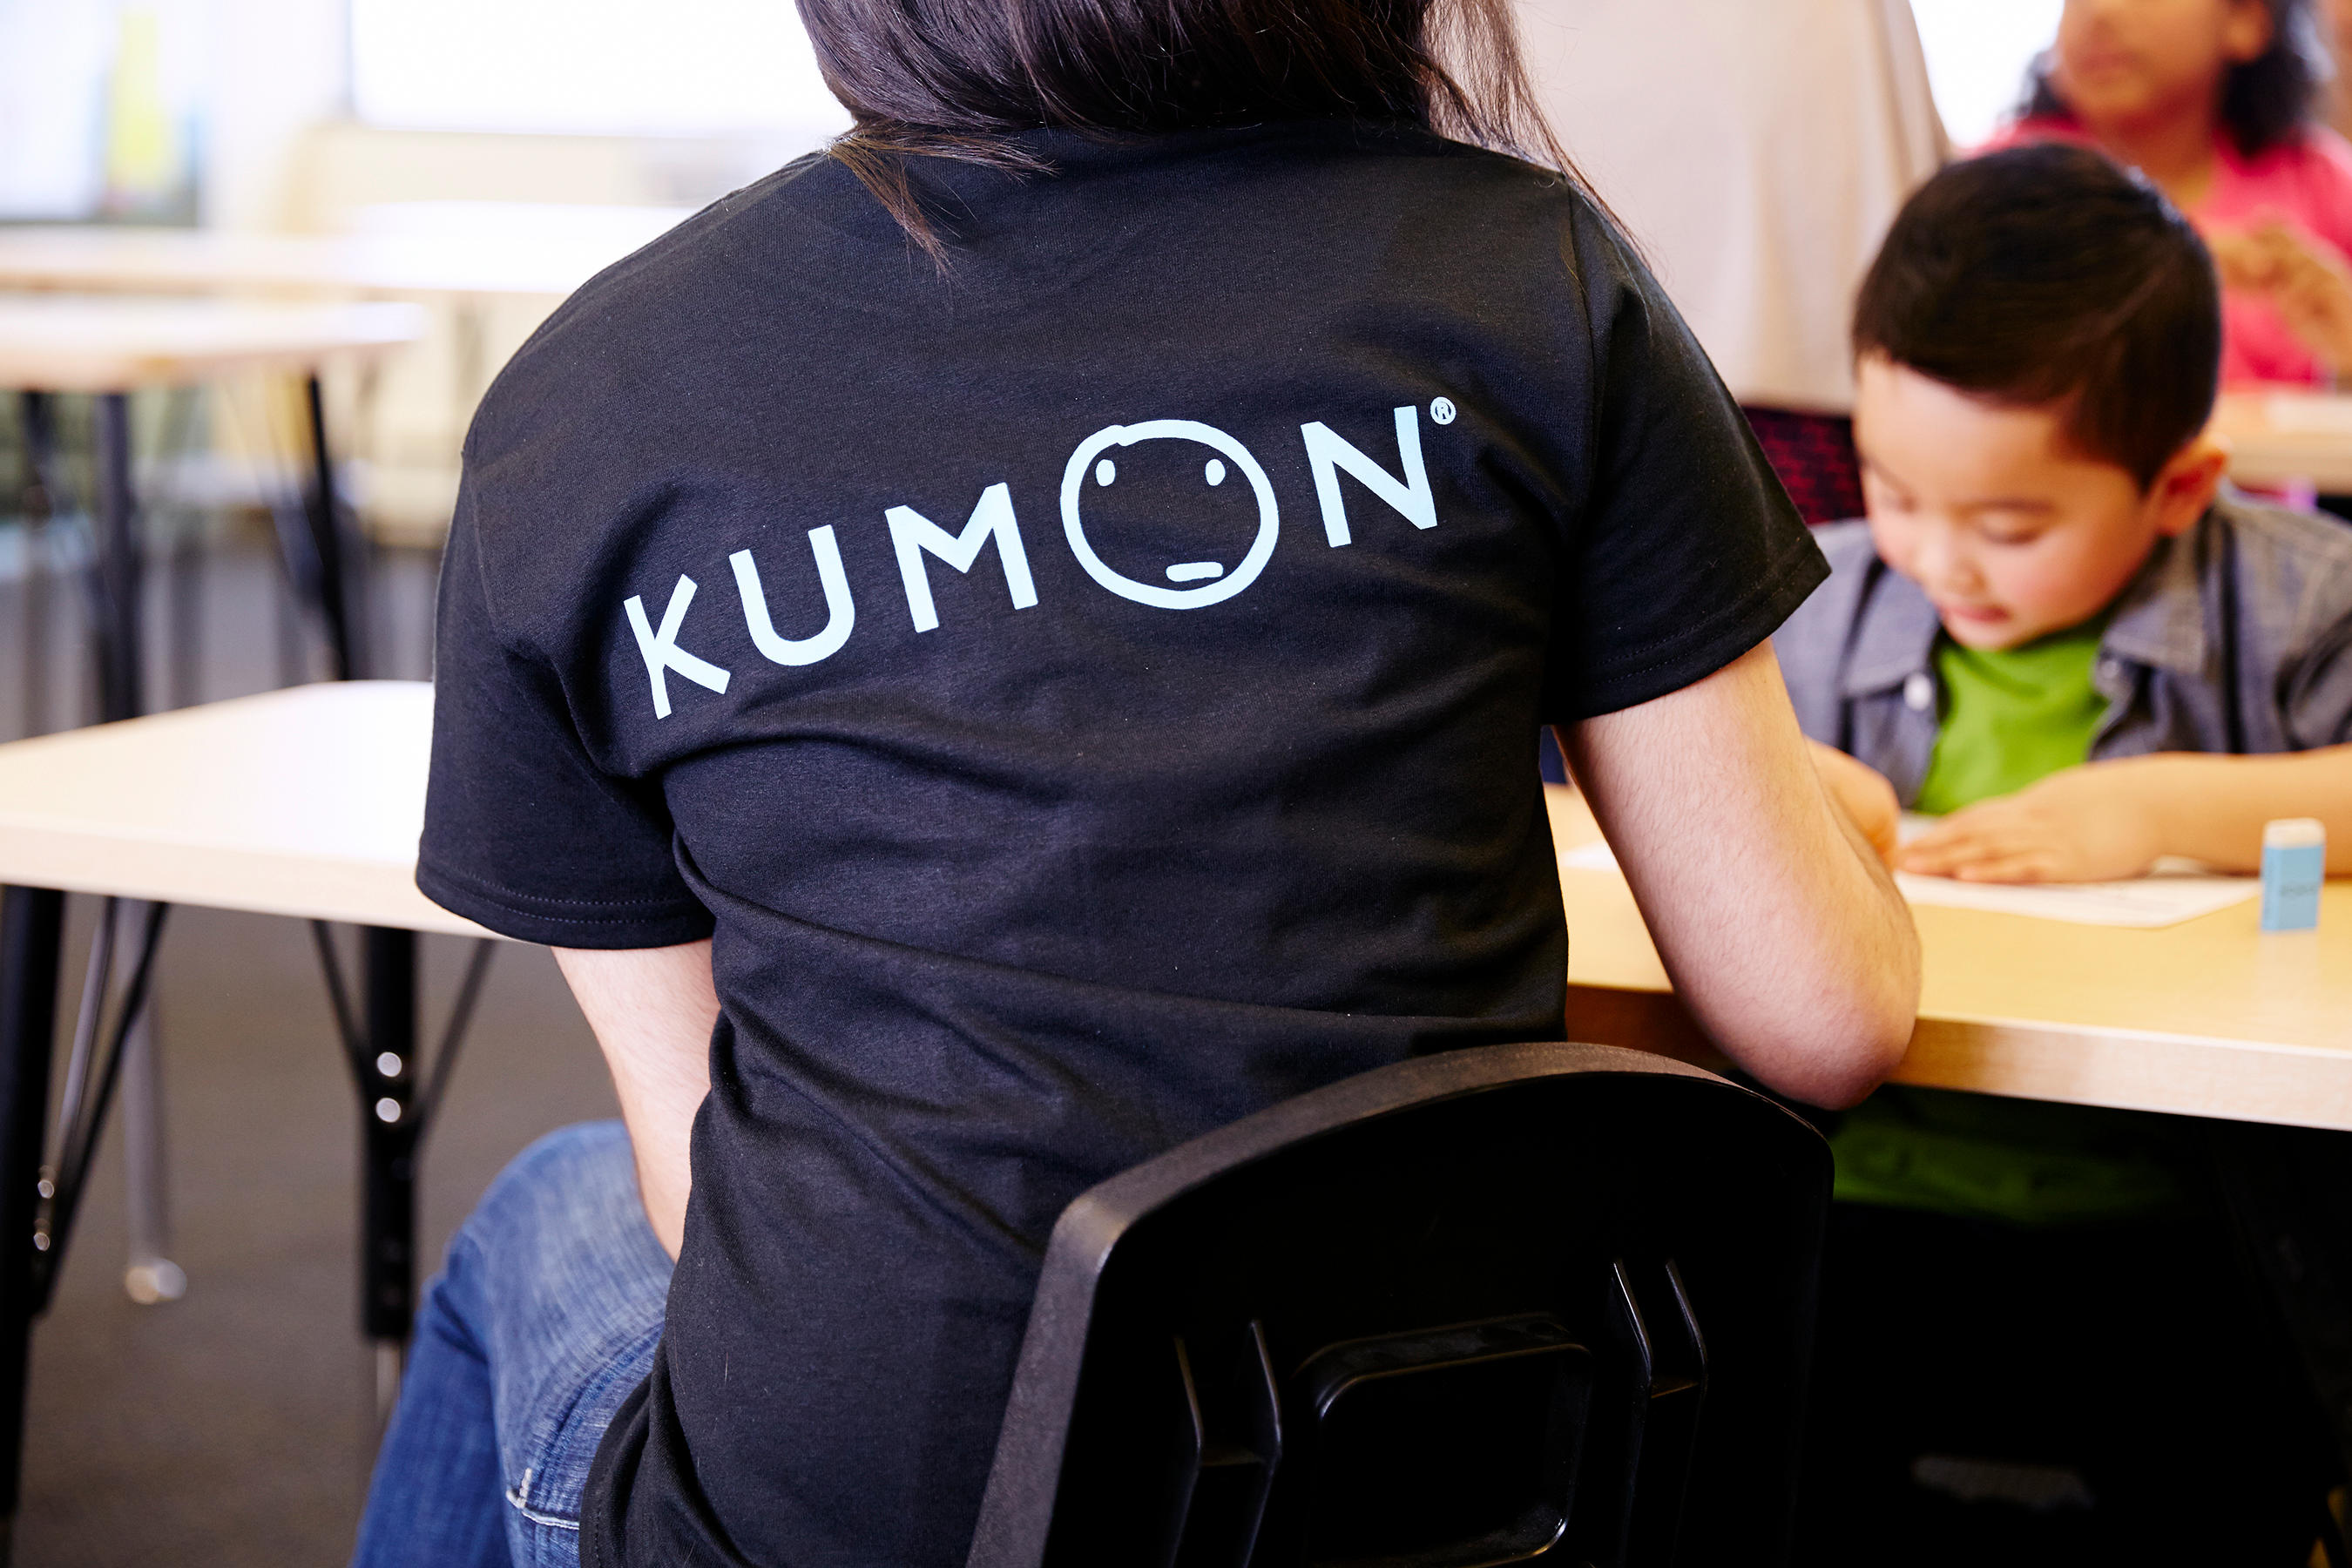 Centro Kumon Plaza Centro Mayor